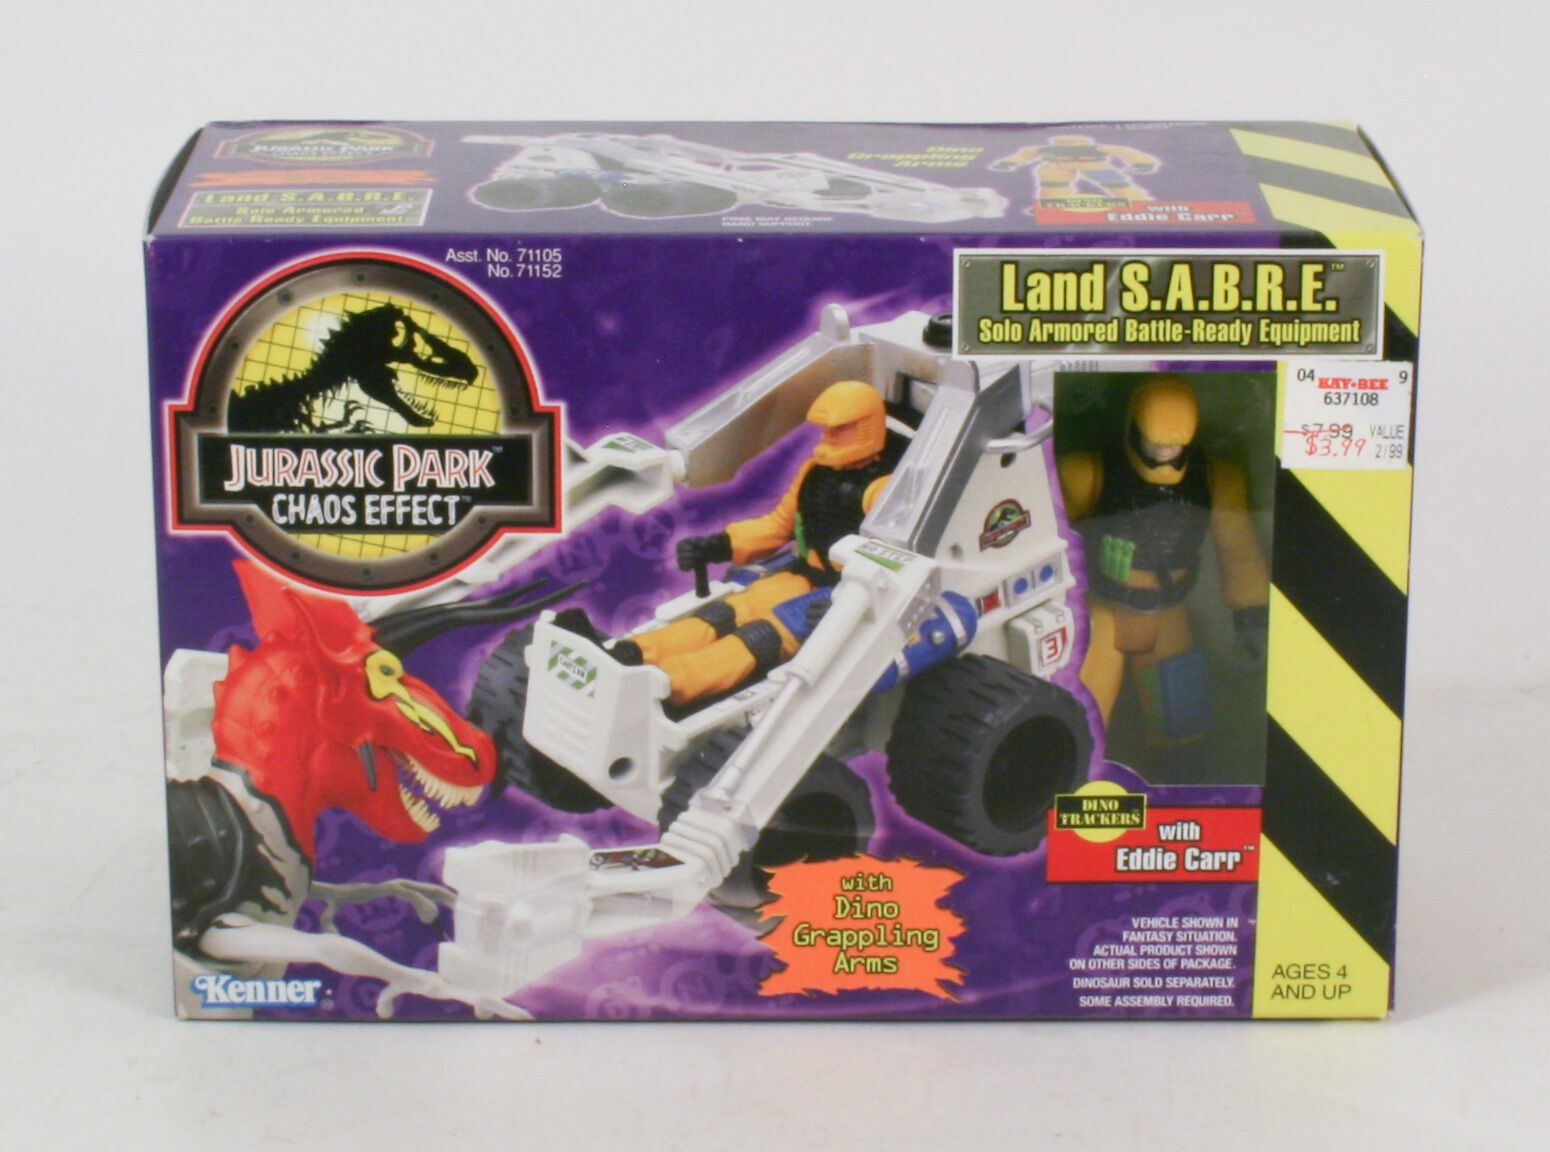 Jurassic Park  Chaos Effect Land S.A.B.R.E. With Eddie Carr Kenner